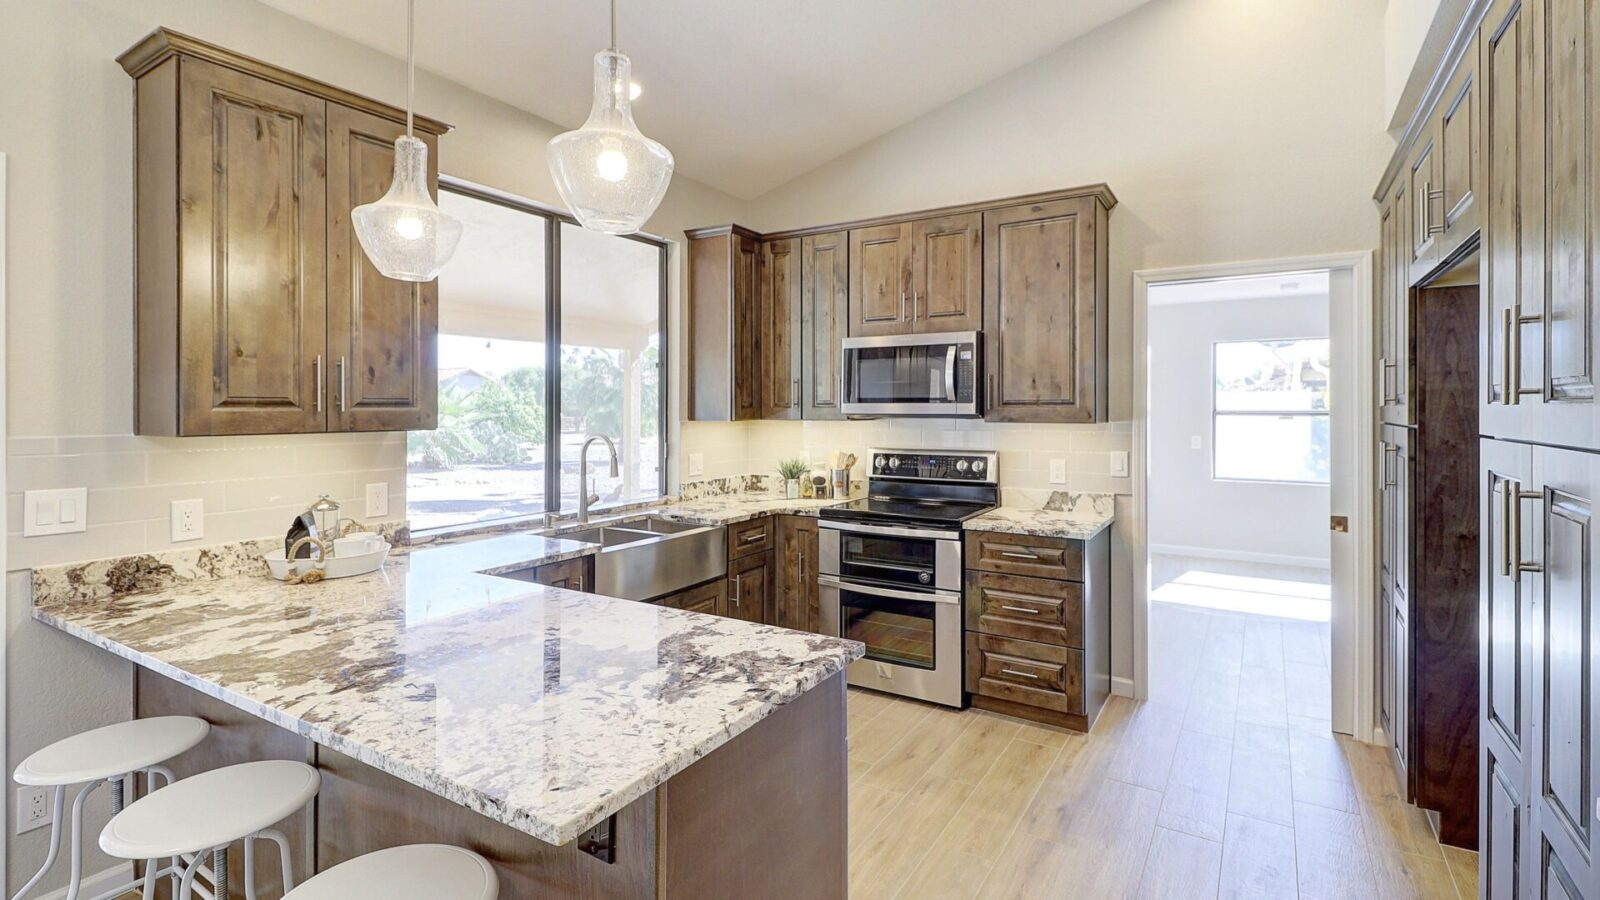 A kitchen counter top with a rustic design